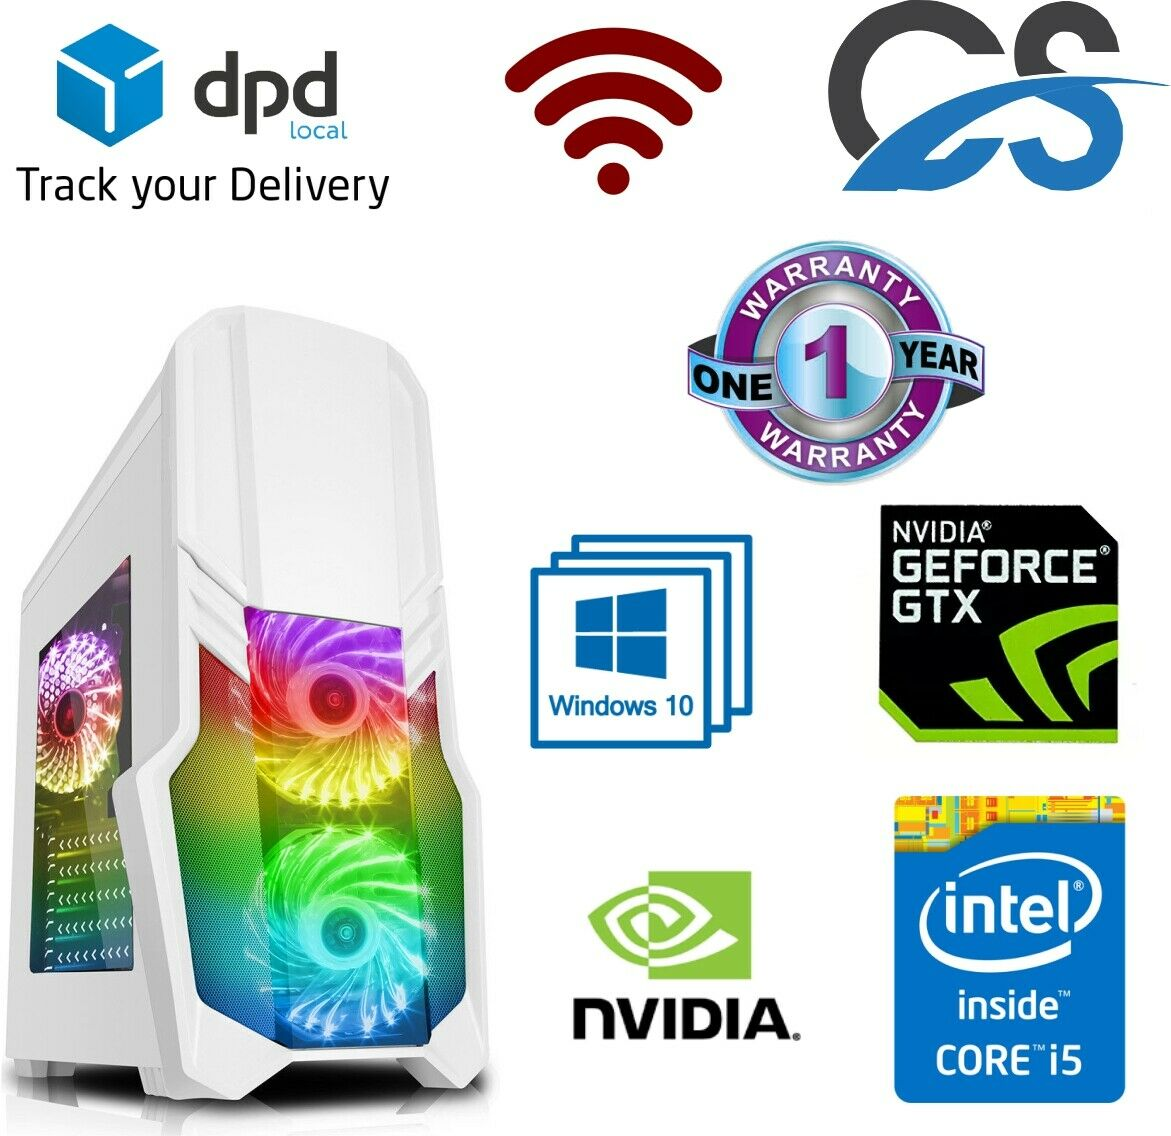 Computer Games - Gaming PC Intel Core i5 4440 Computer SSD HDD 16GB RAM GT GTX Windows 10 WiFi